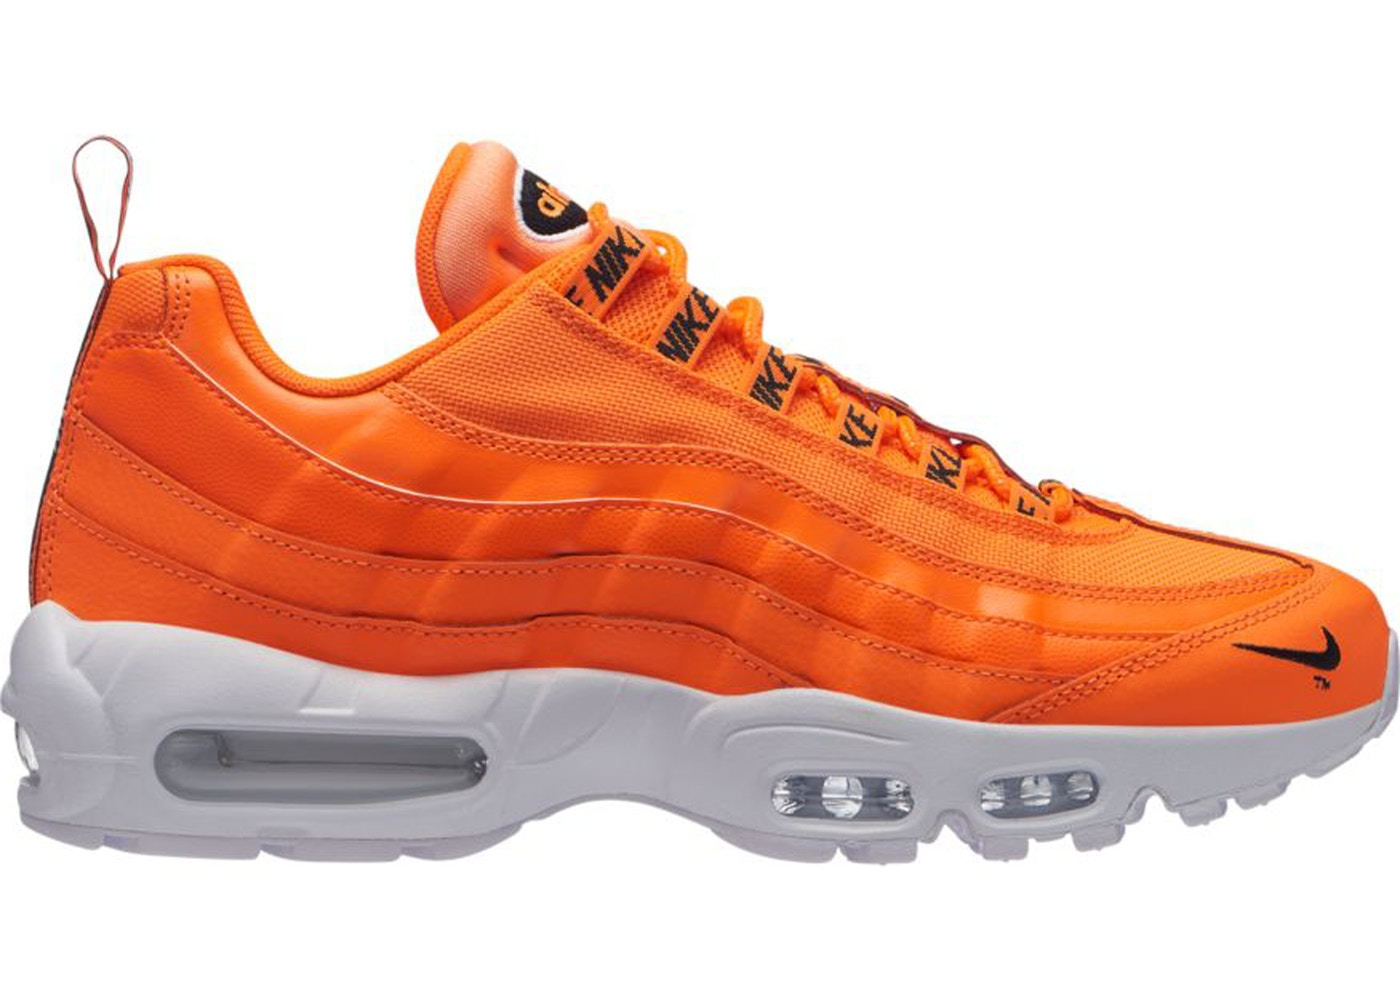 Air Max 95 Overbranding Total Orange